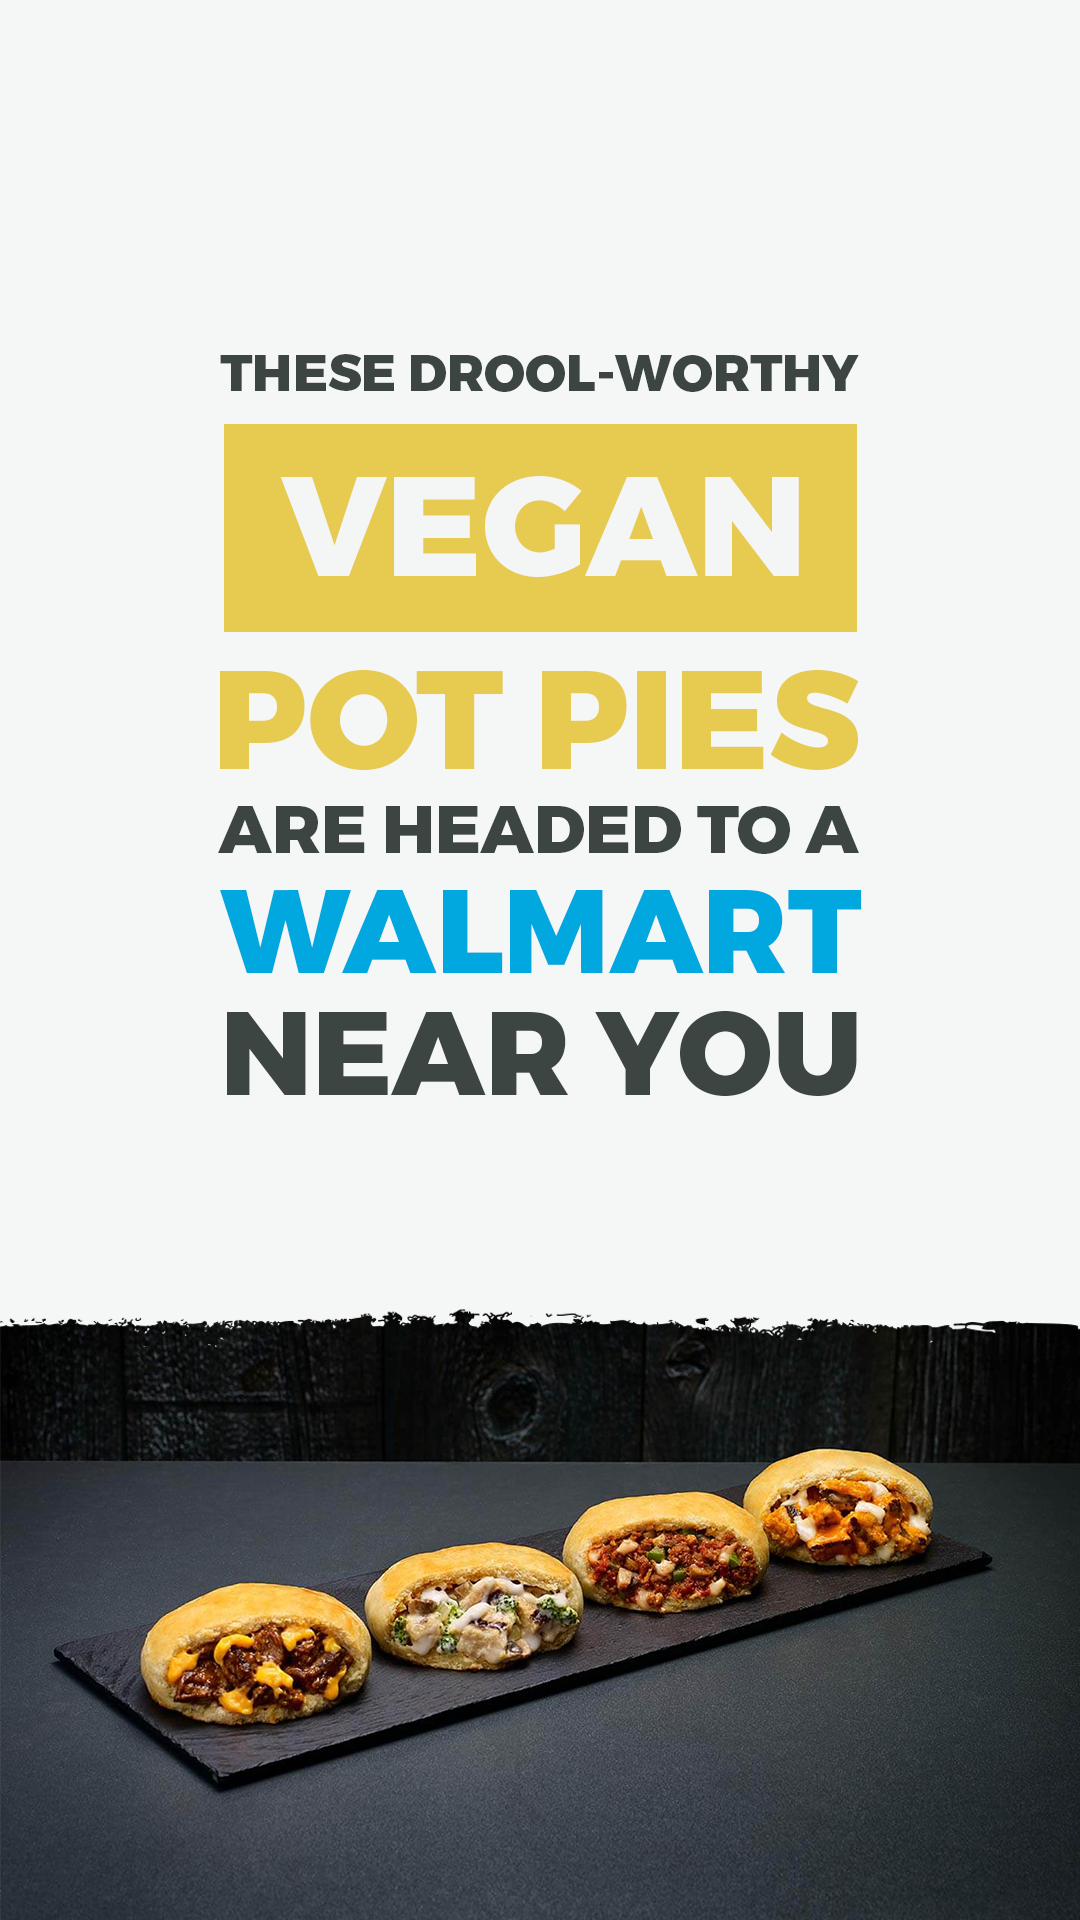 These Drool-Worthy Vegan Pot Pies Are Headed to a Walmart Near You